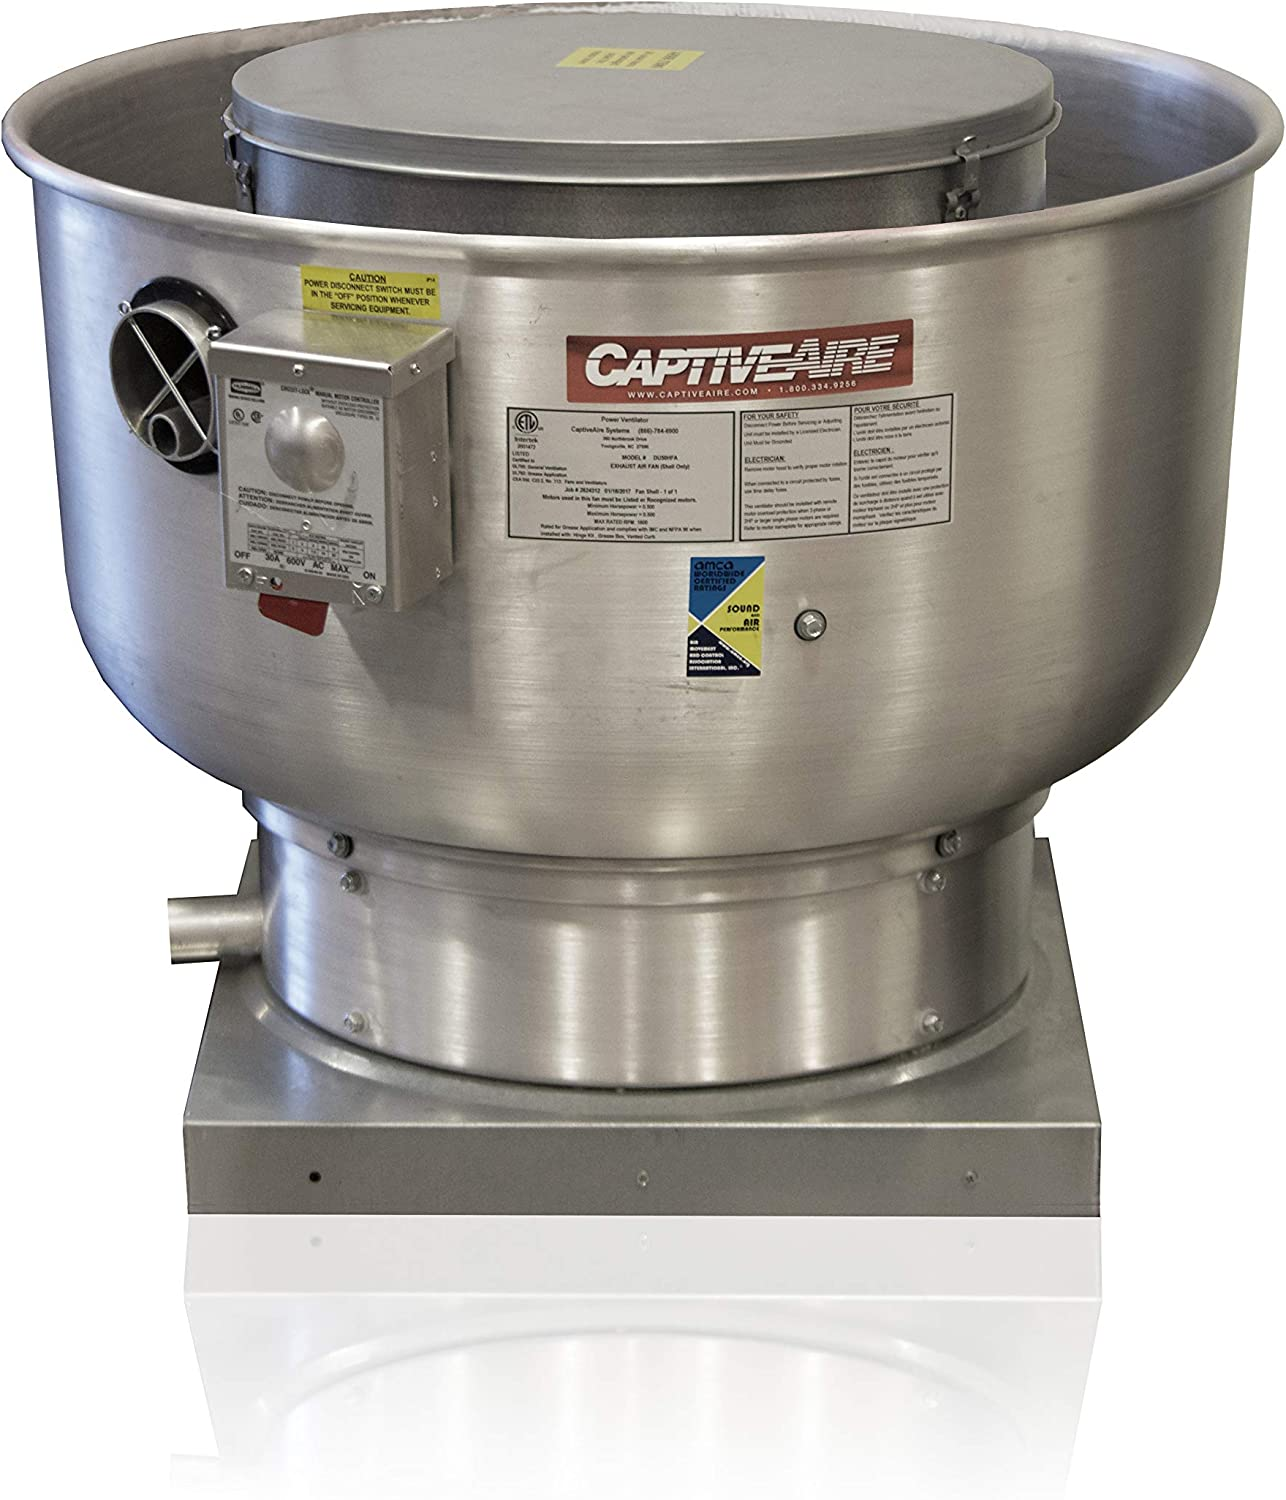 Low Profile Grease Rated Food Truck Exhaust Fan- High Speed Direct Drive Centrifugal Upblast Exhaust Fan with speed control- 19